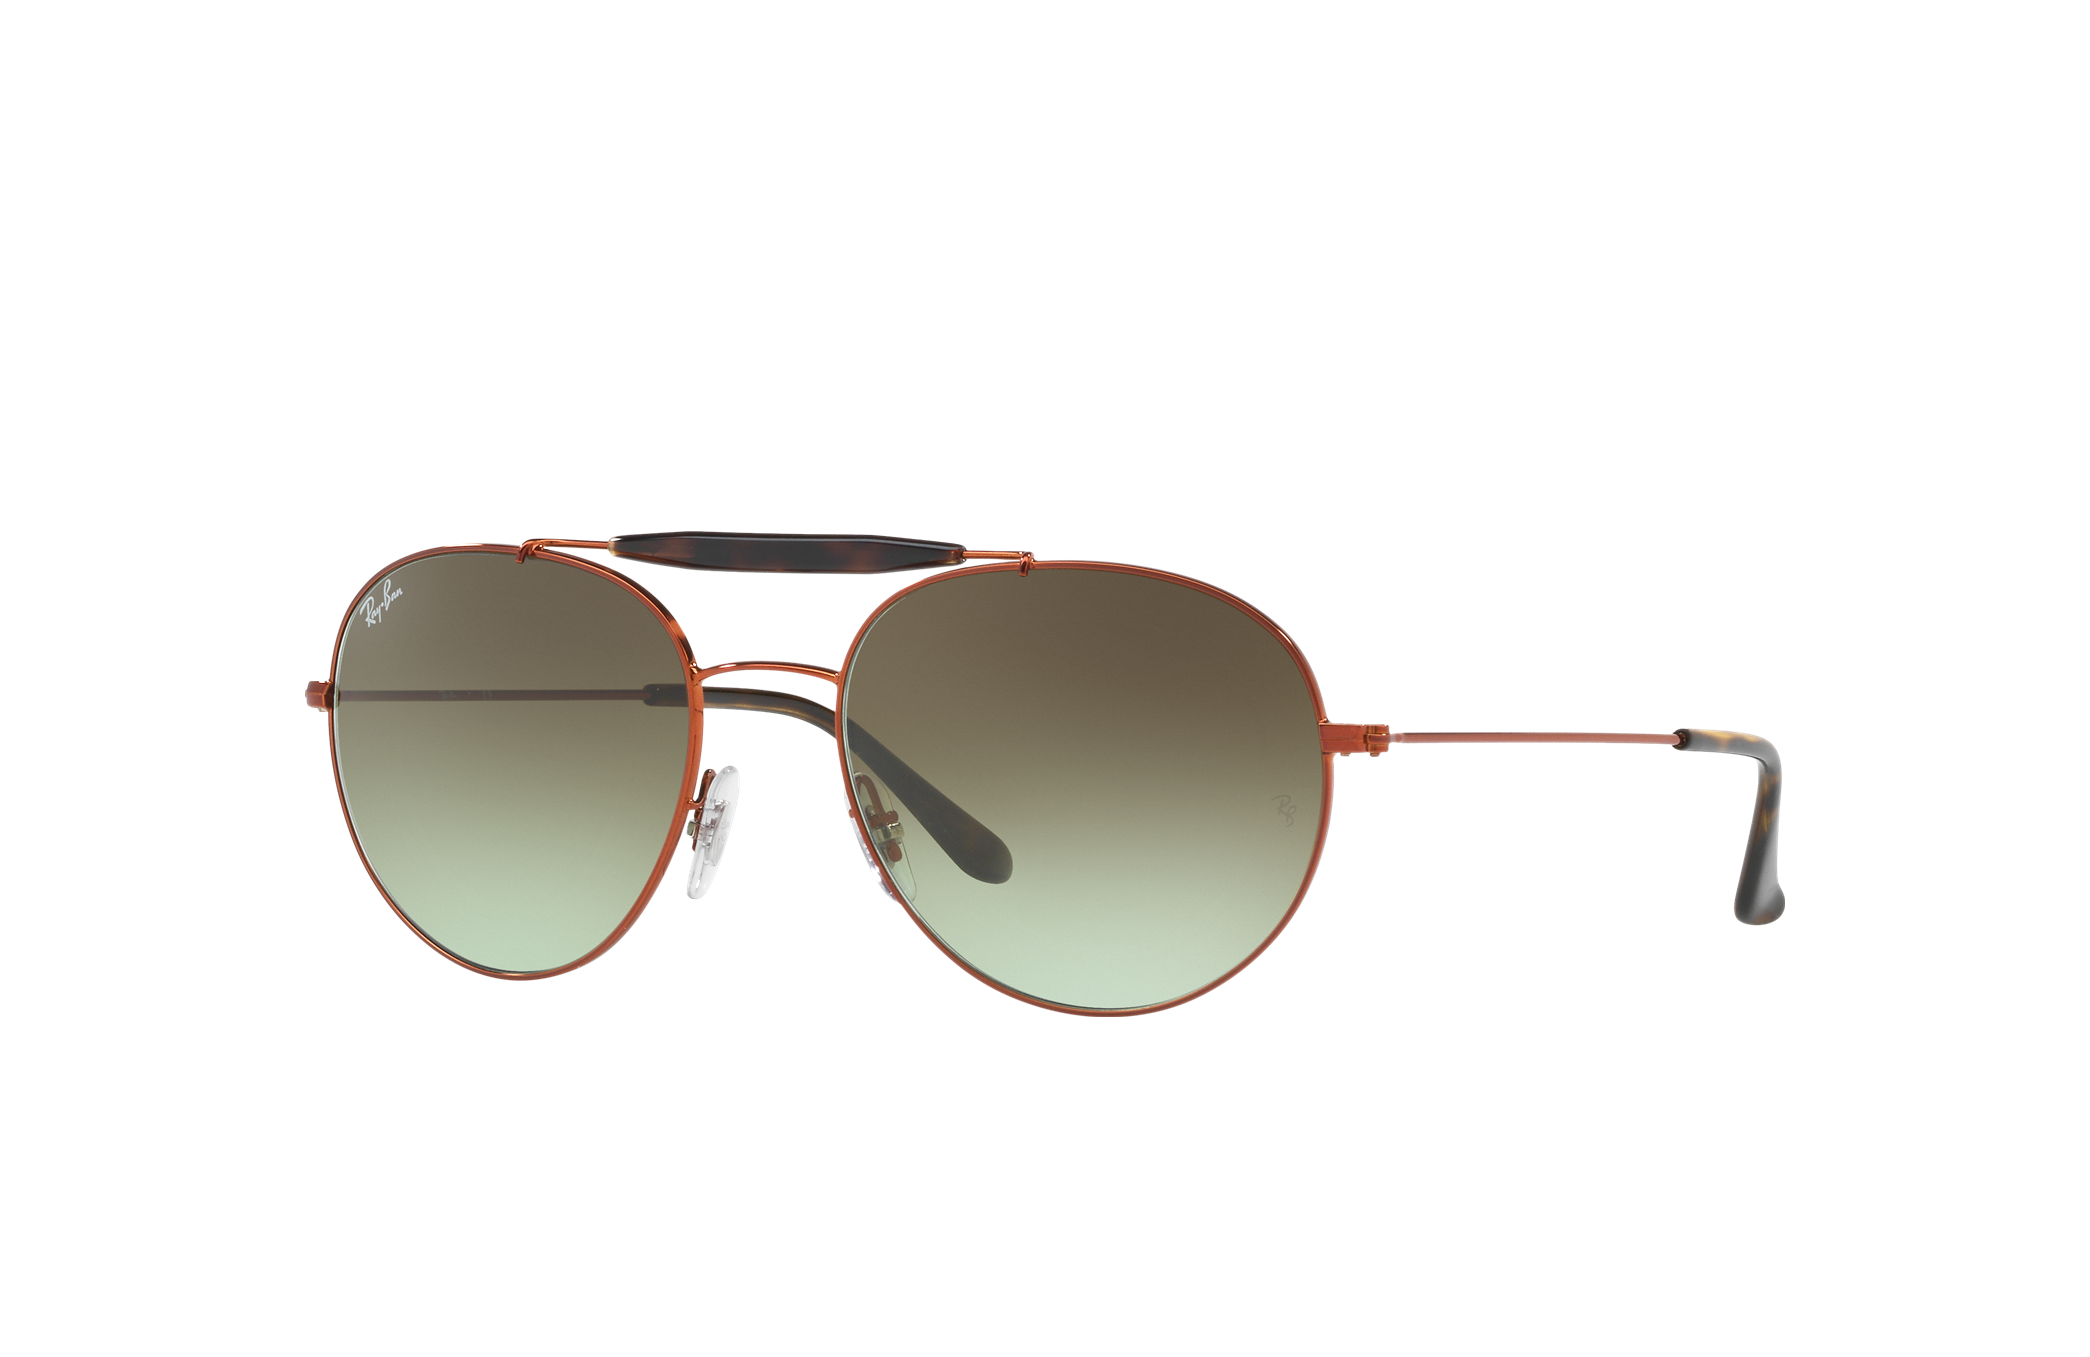 Ray-Ban Rb3540 Bronze-Copper, Green Lenses - RB3540